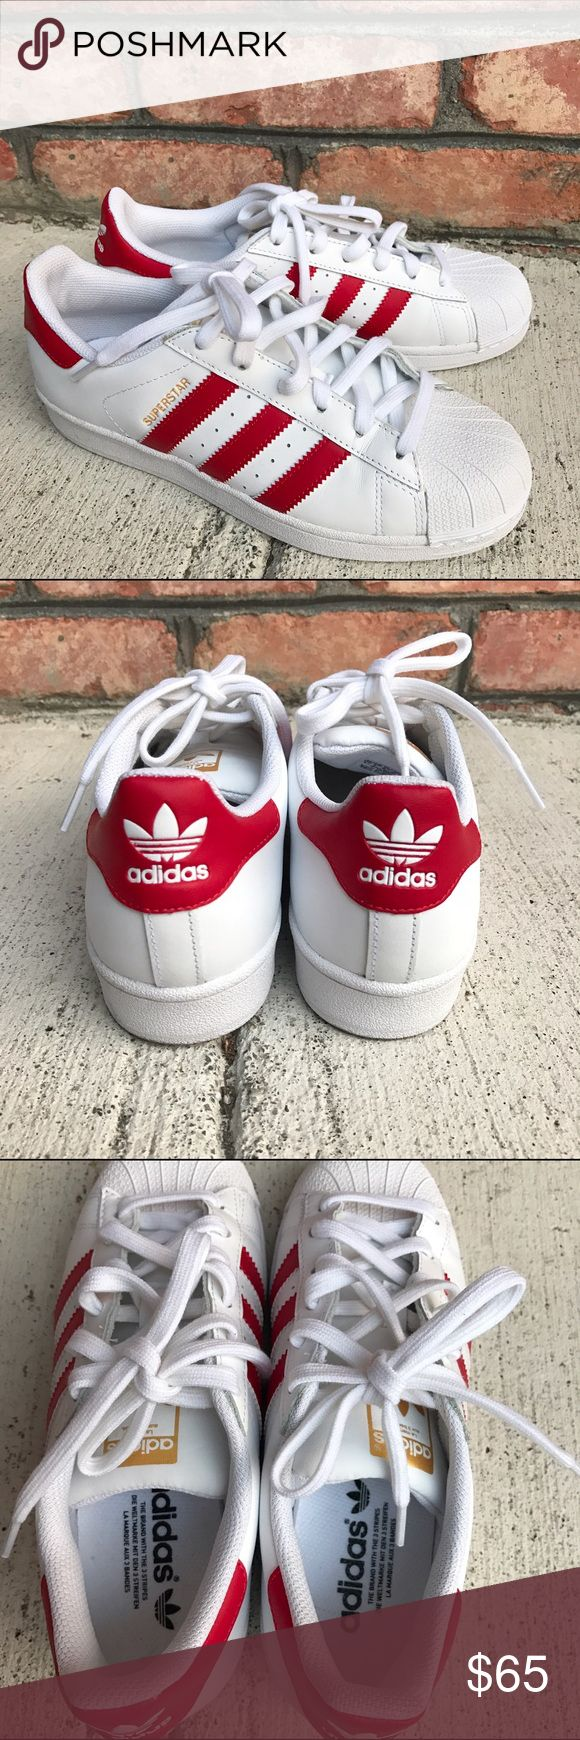 Red and white Adidas All Stars Only worn once for a shoot! Will not accept much lower price because they are a brand new pair of shoes! 6.5 men/ 8 women's Adidas Shoes Sneakers